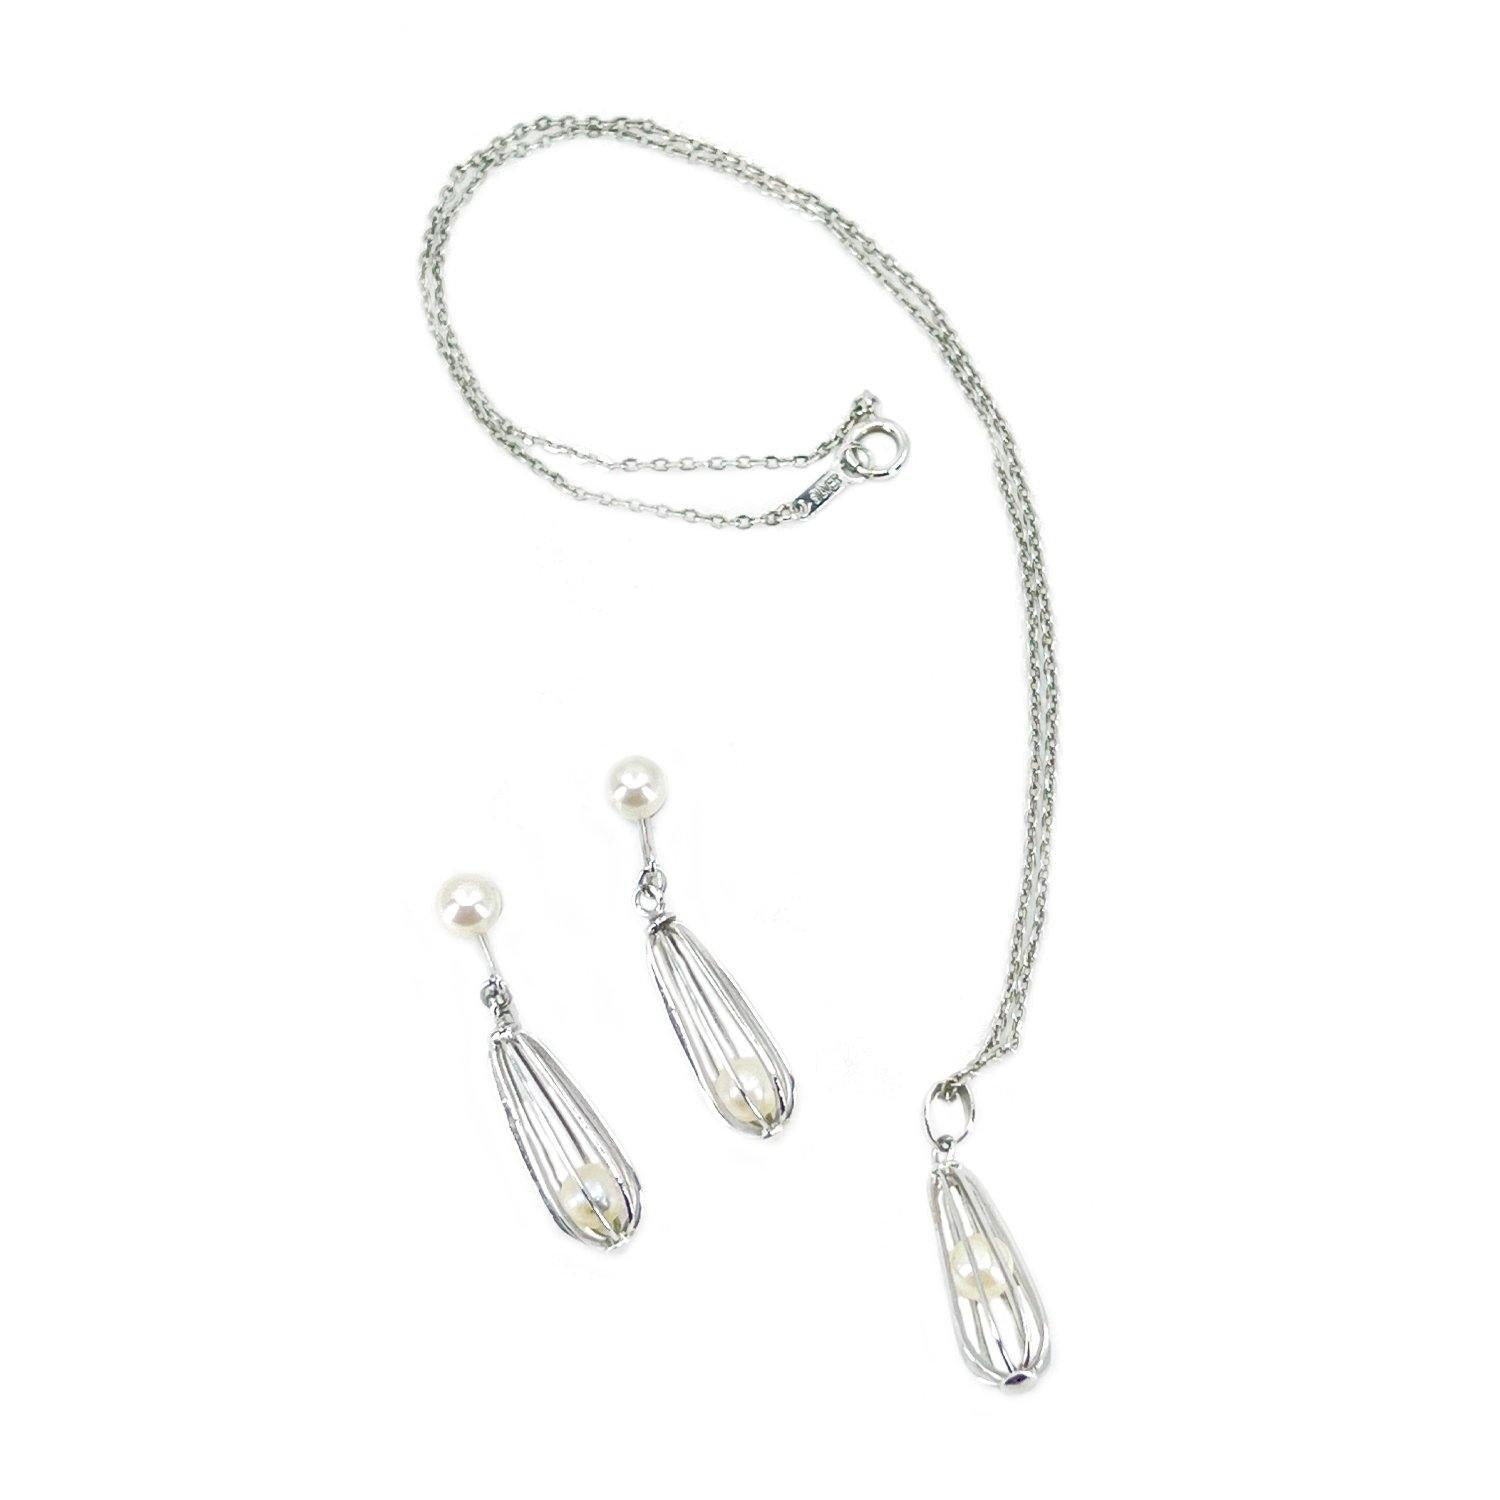 Takashima Designer Akoya Saltwater Cultured Cadged Pearl Screwback Earrings Pendant Set- Sterling Silver